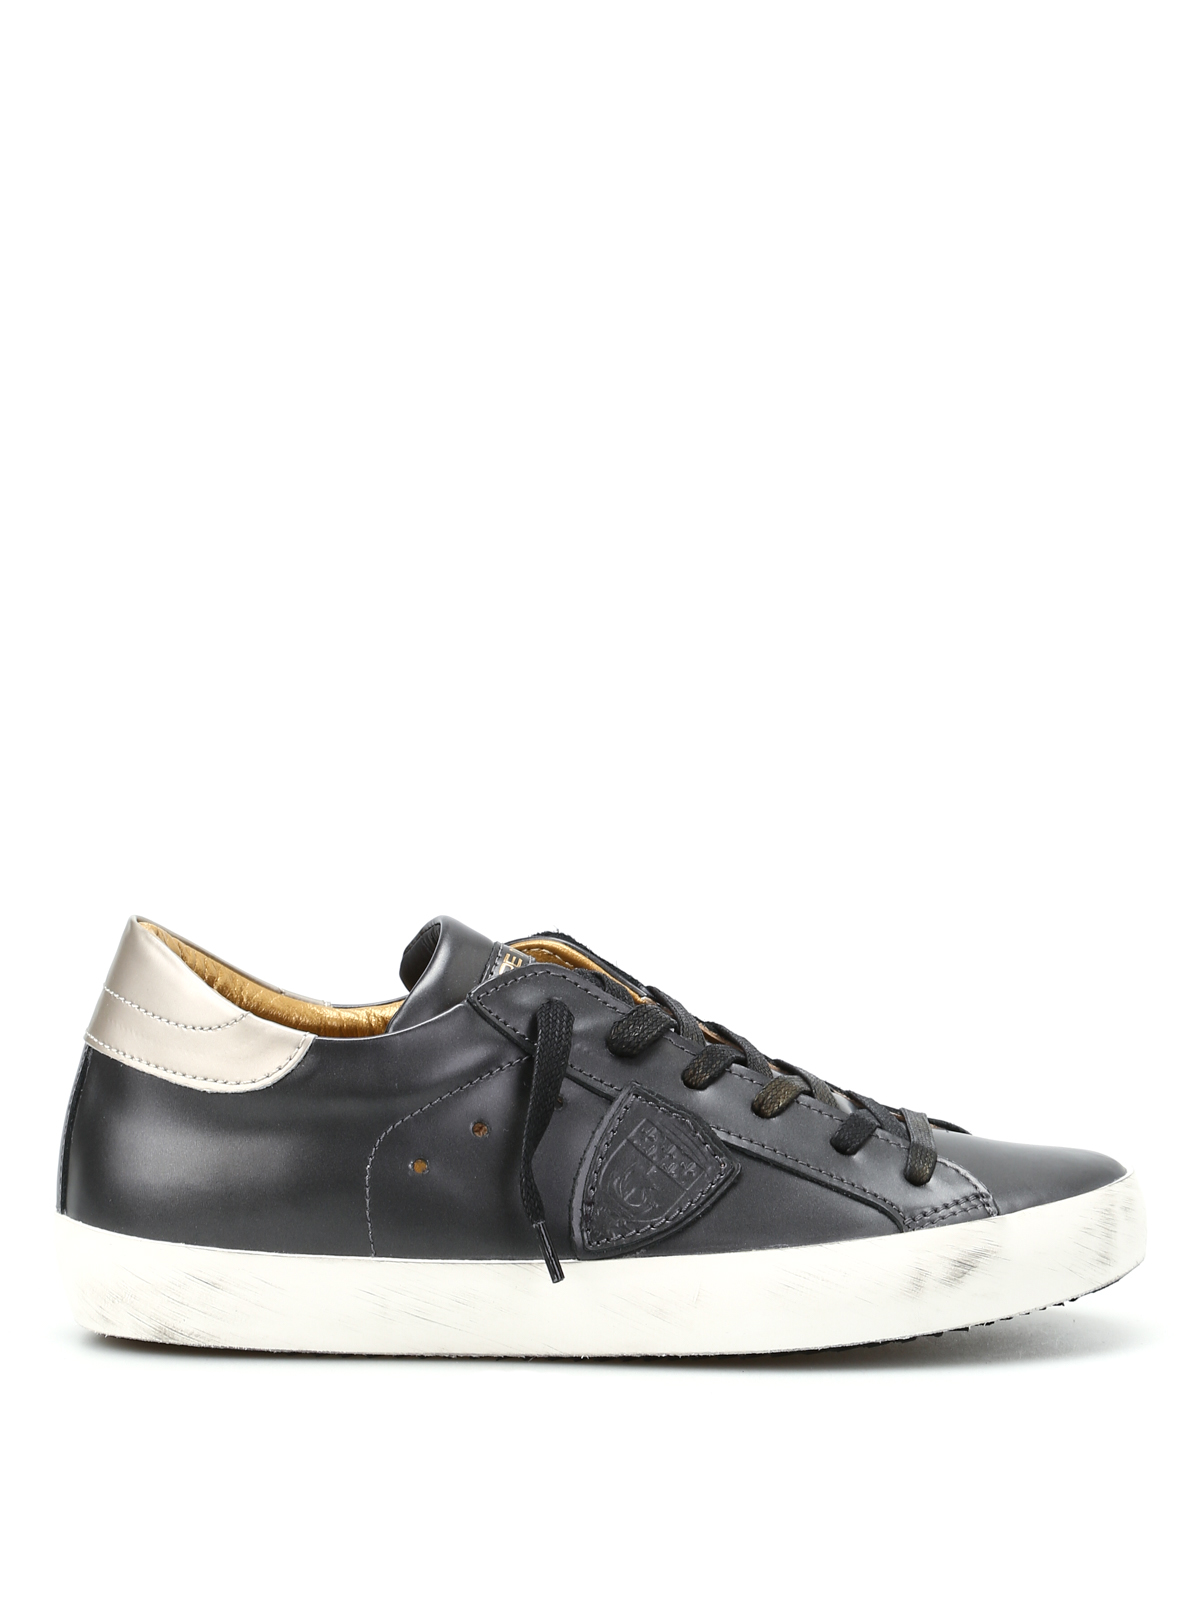 paris metal leather sneakers by philippe model trainers ikrix. Black Bedroom Furniture Sets. Home Design Ideas